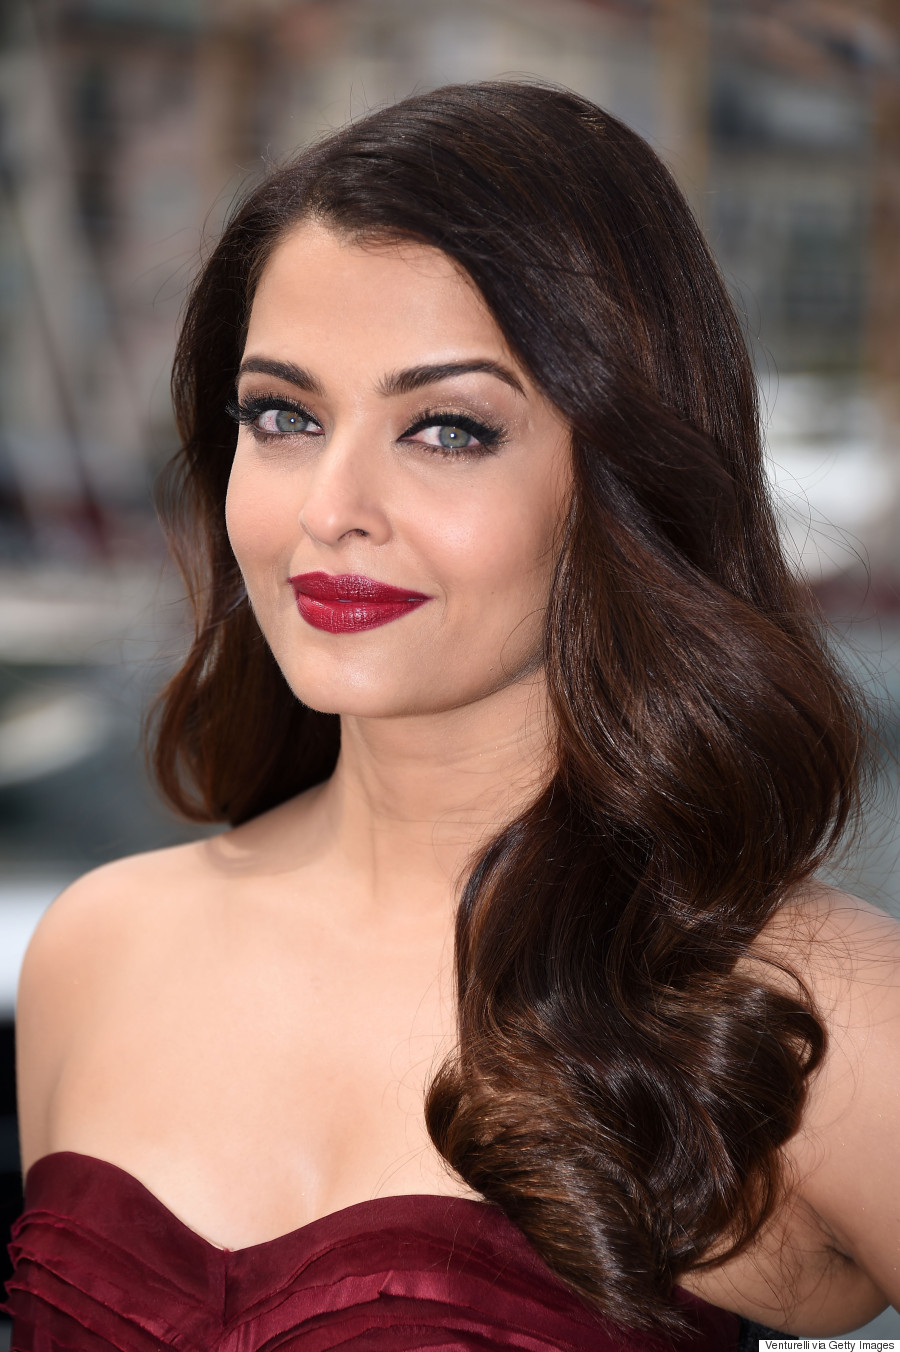 Aishwaria rai Nude Photos 81